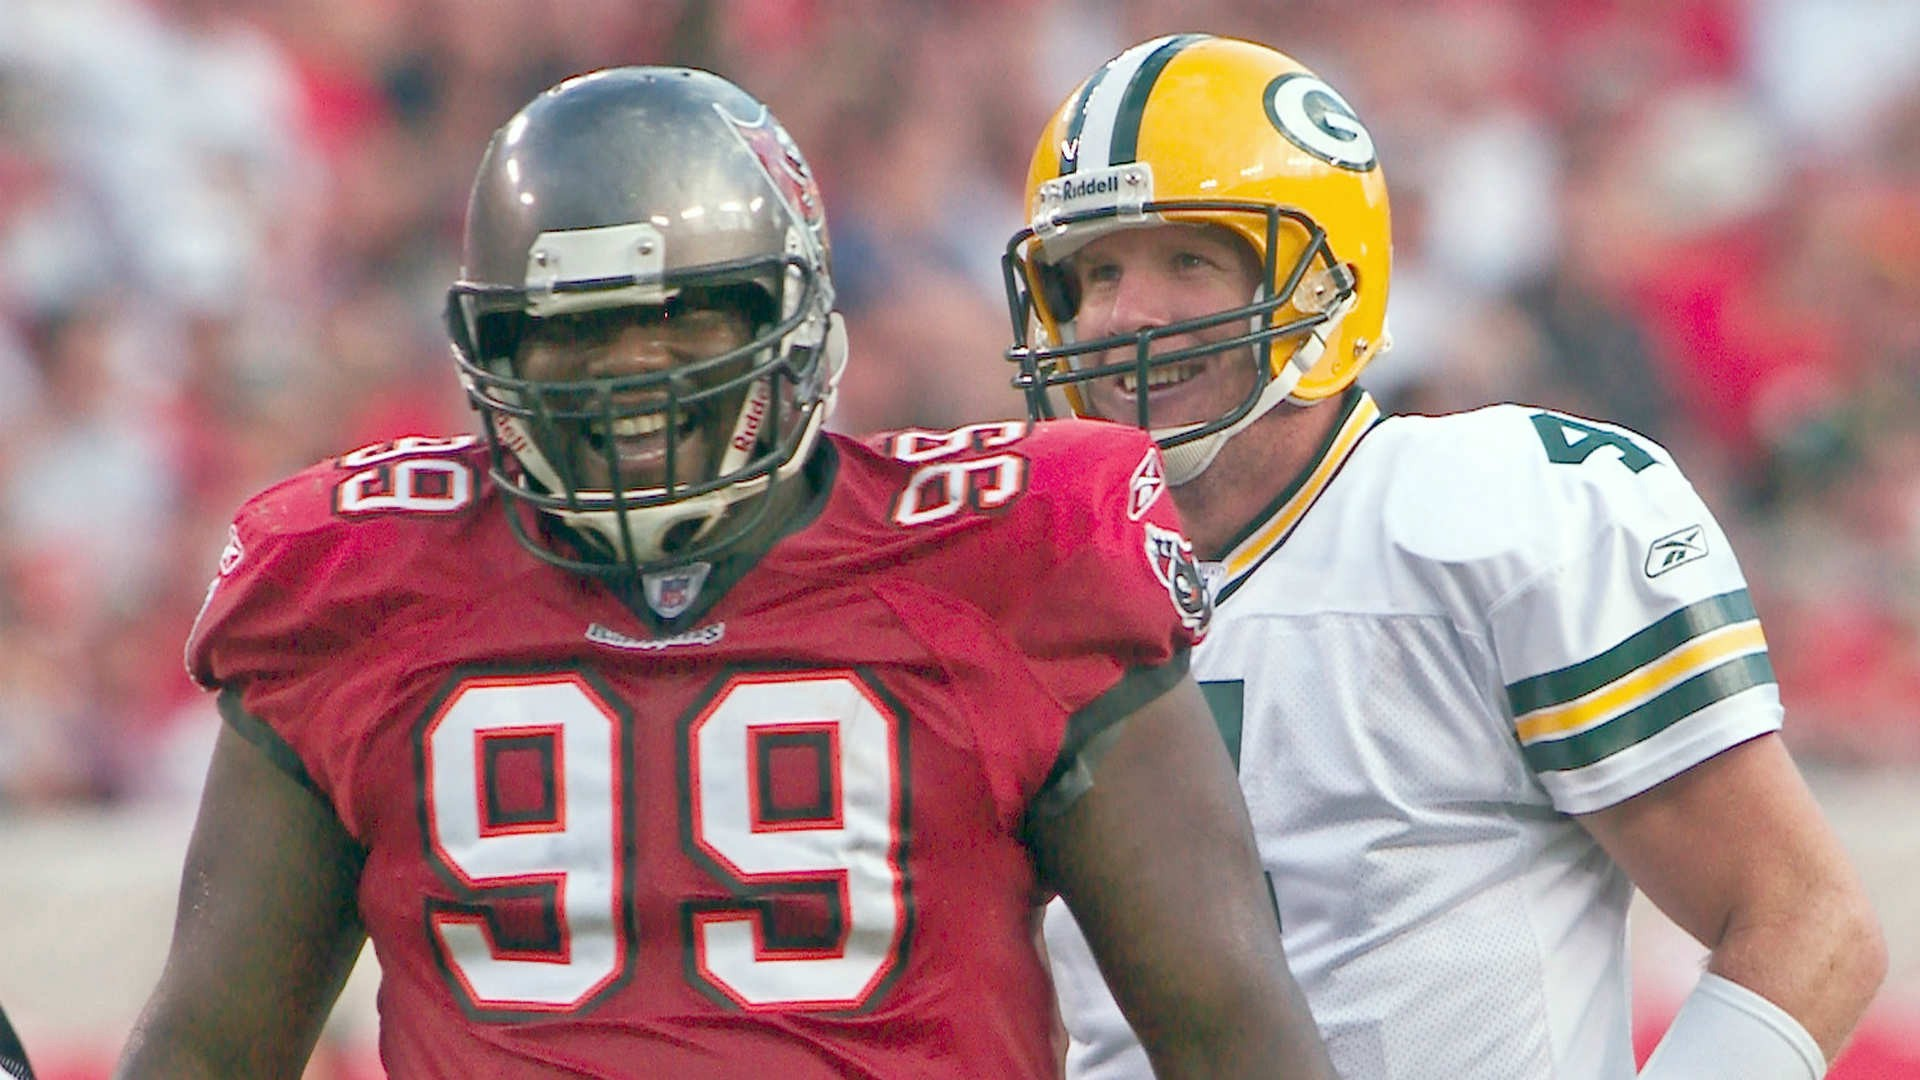 Remember Brett Favre and Warren Sapp? Hopefully Packers vs. Bucs in Week 6 is just as fun as the good old days…